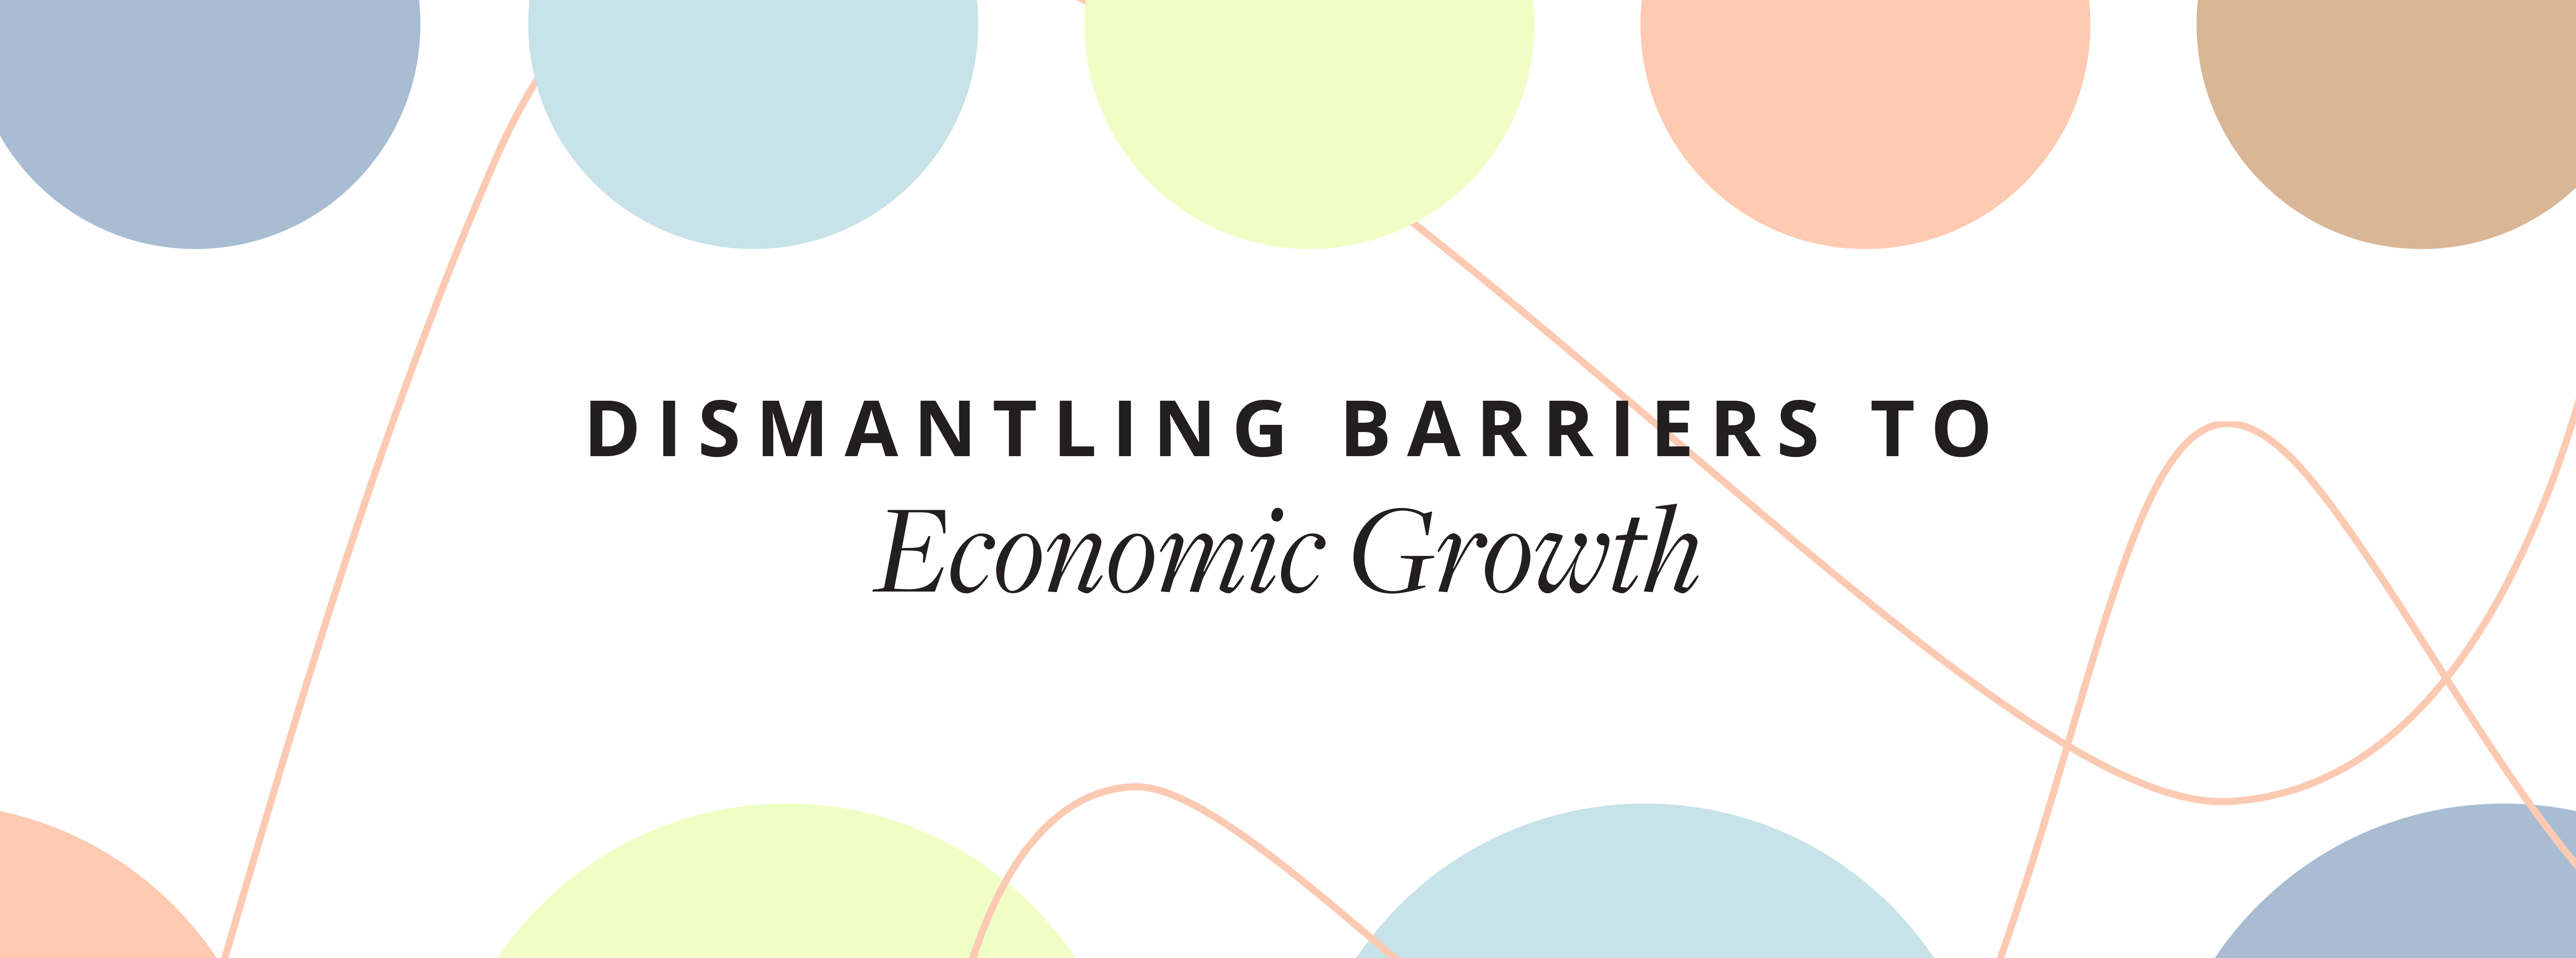 Dismantling Barriers to Economic Growth